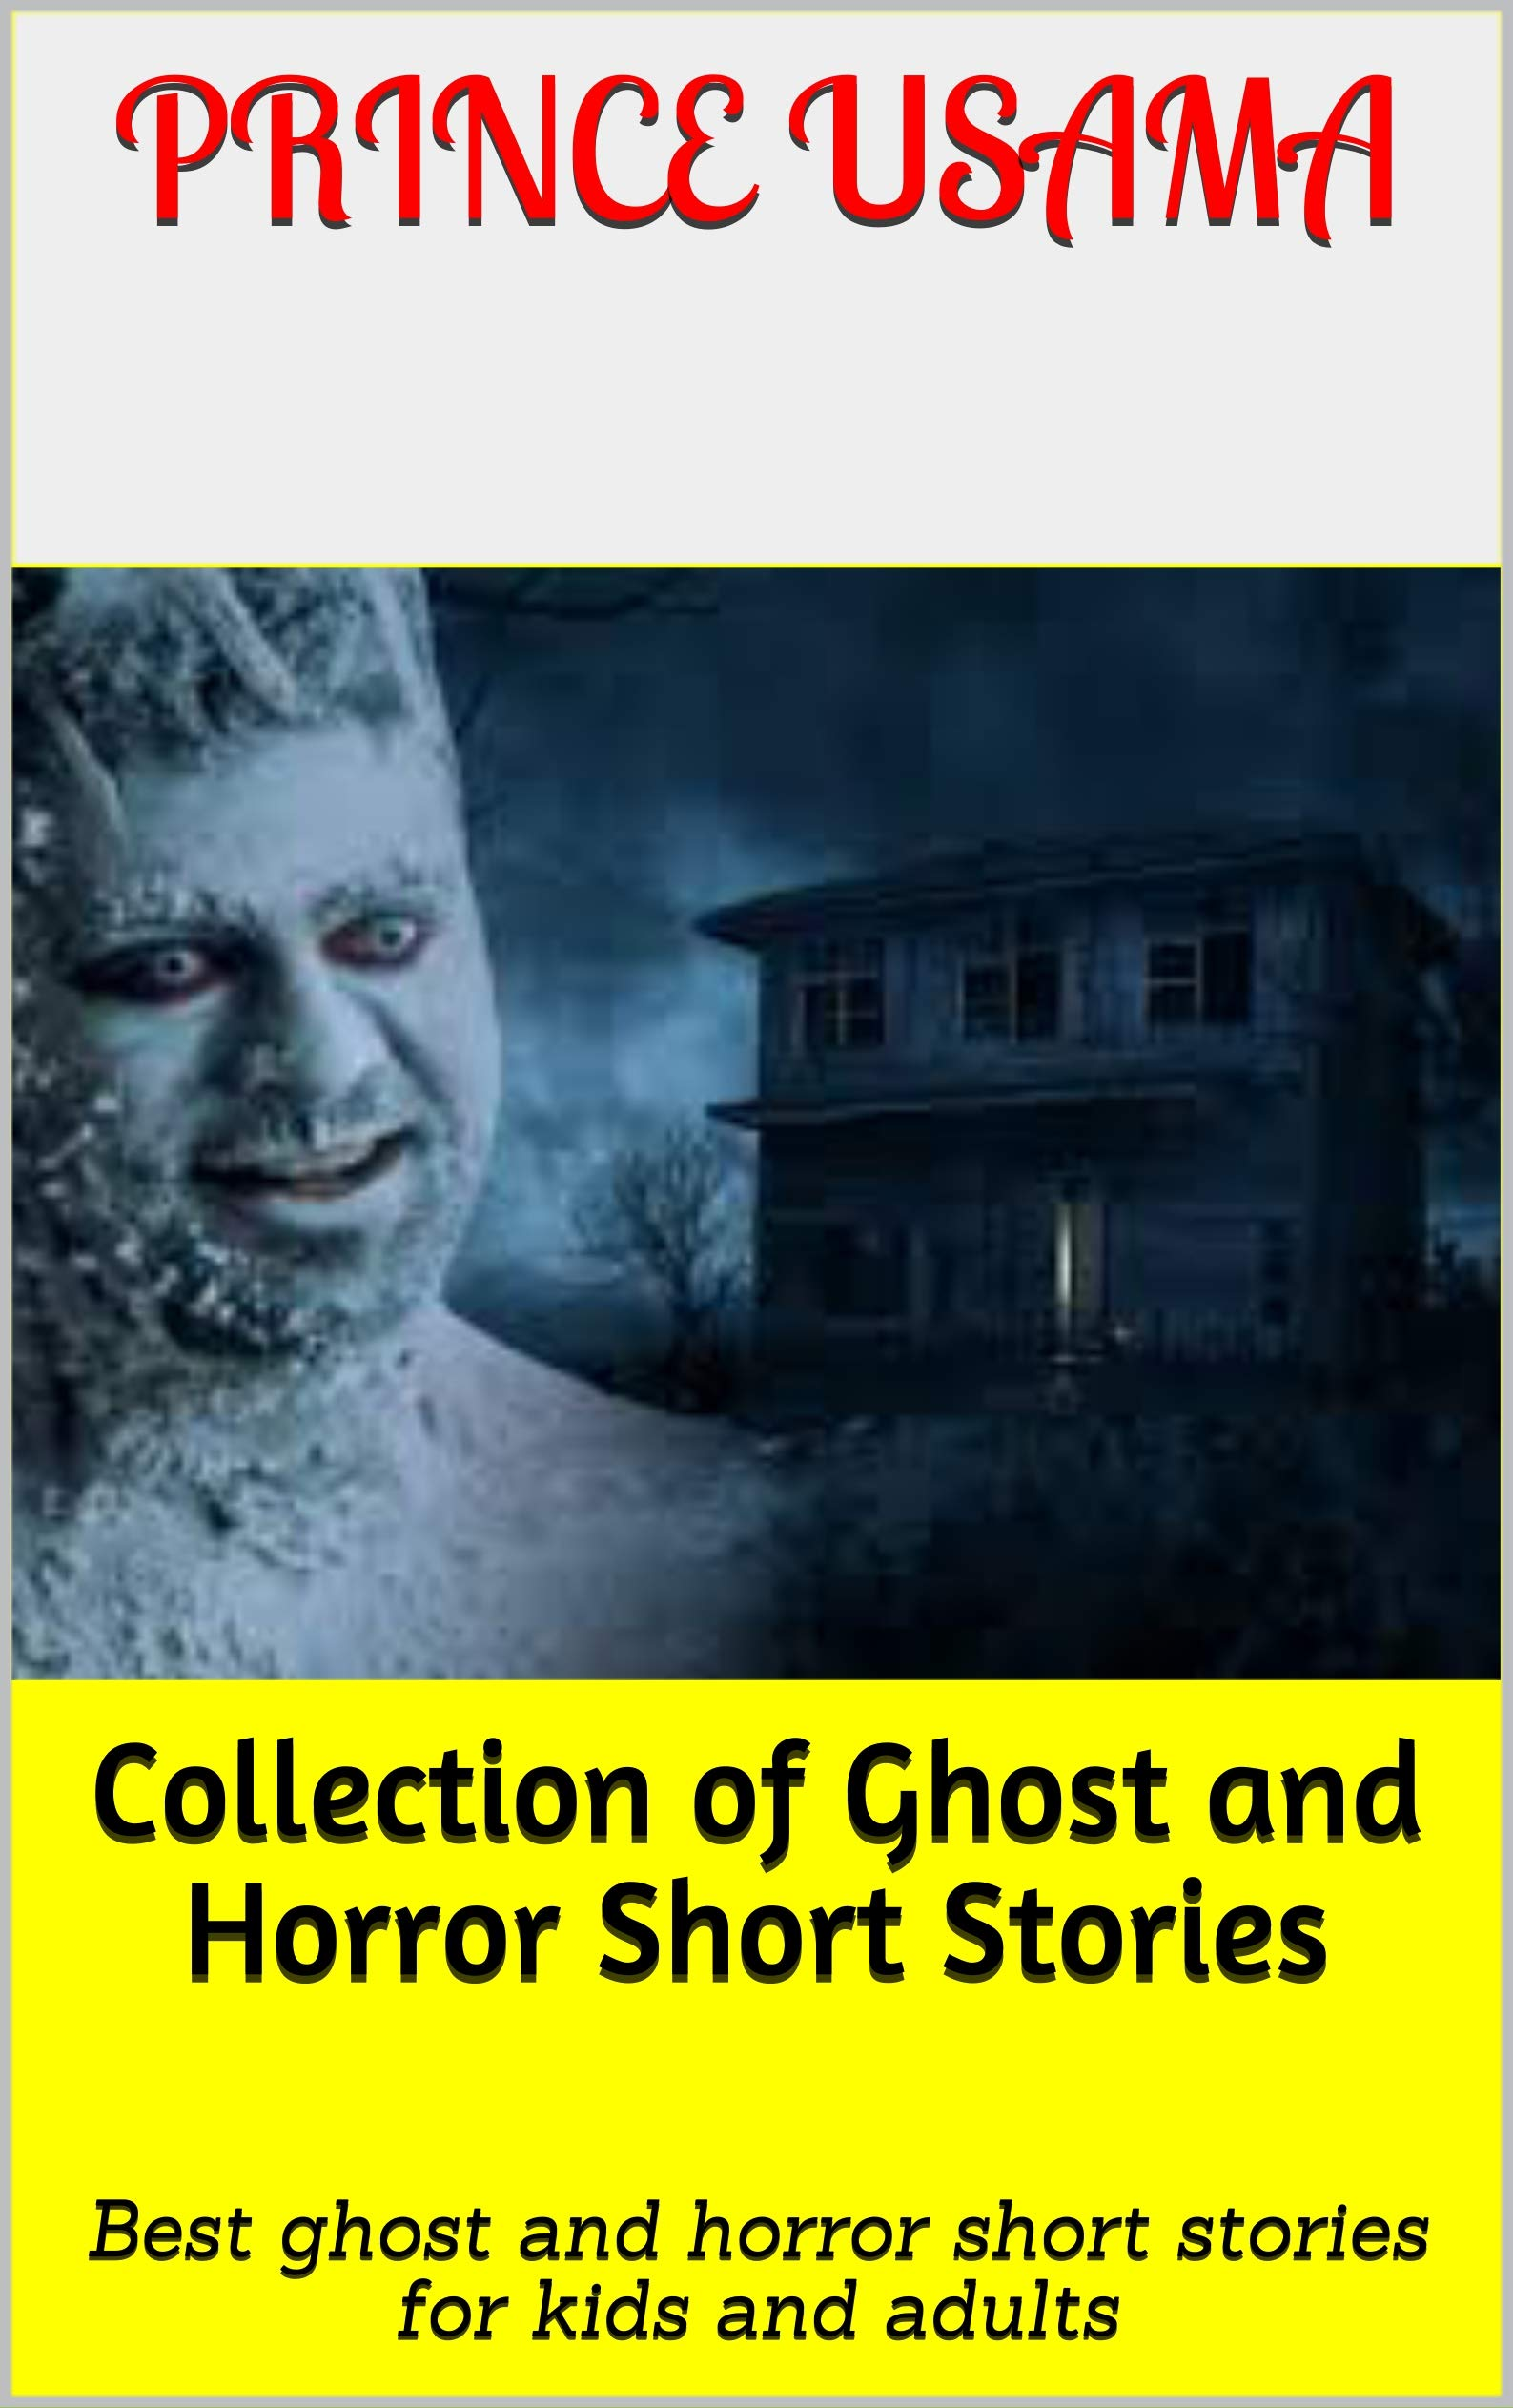 Series of Ghost and Horror Short Stories for kids and children : Best ghost and horror short stories for kids and adults